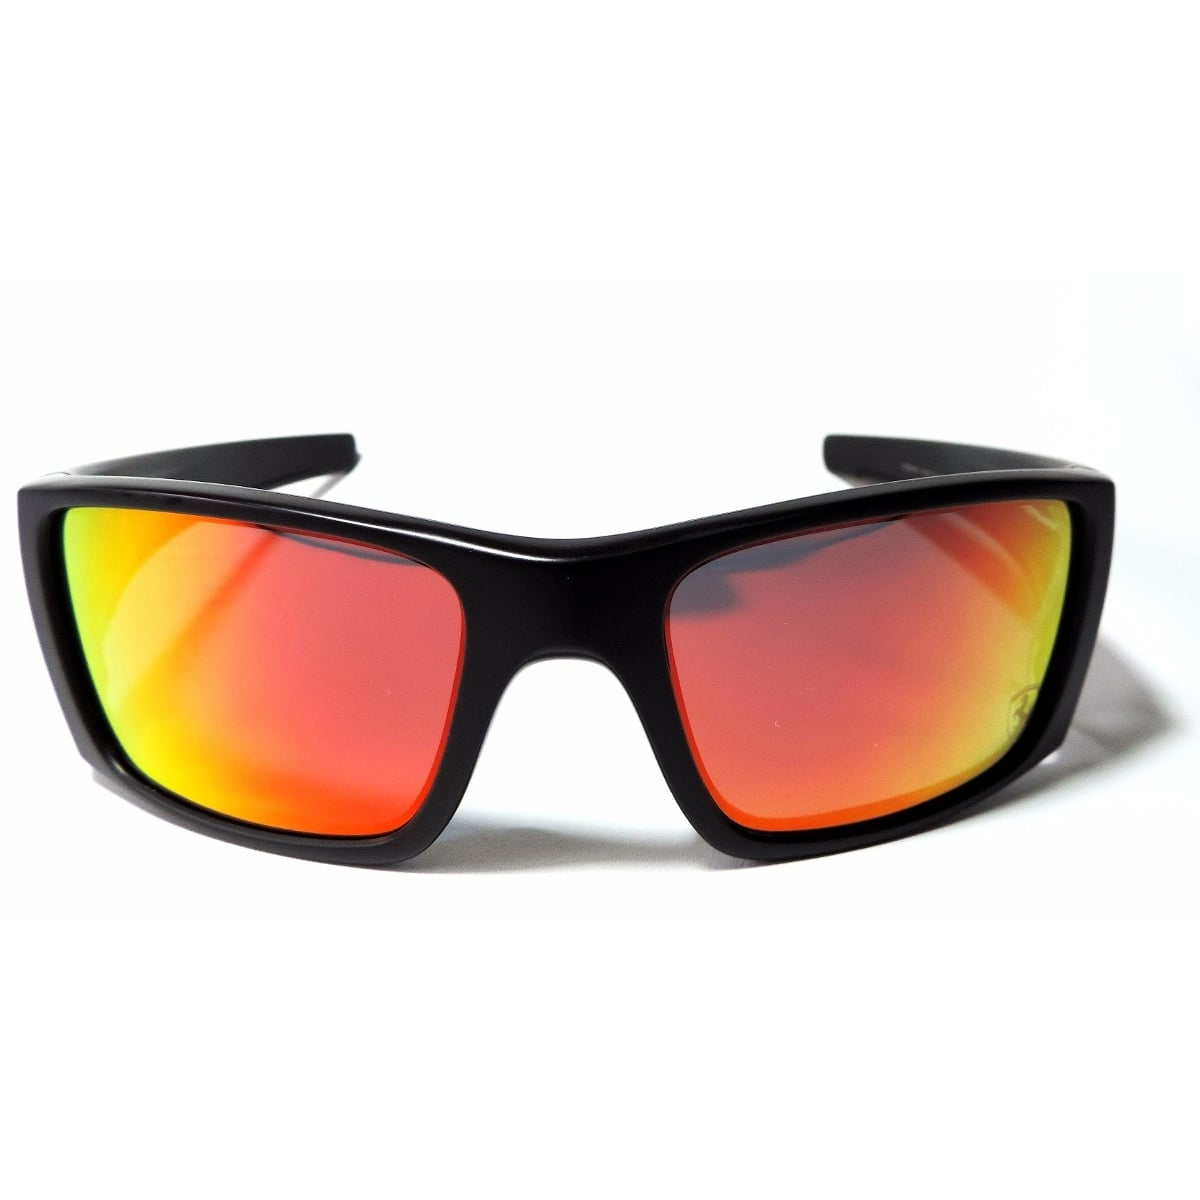 82cf7a95df Oakley Mens Sunglasses Amazon « Heritage Malta